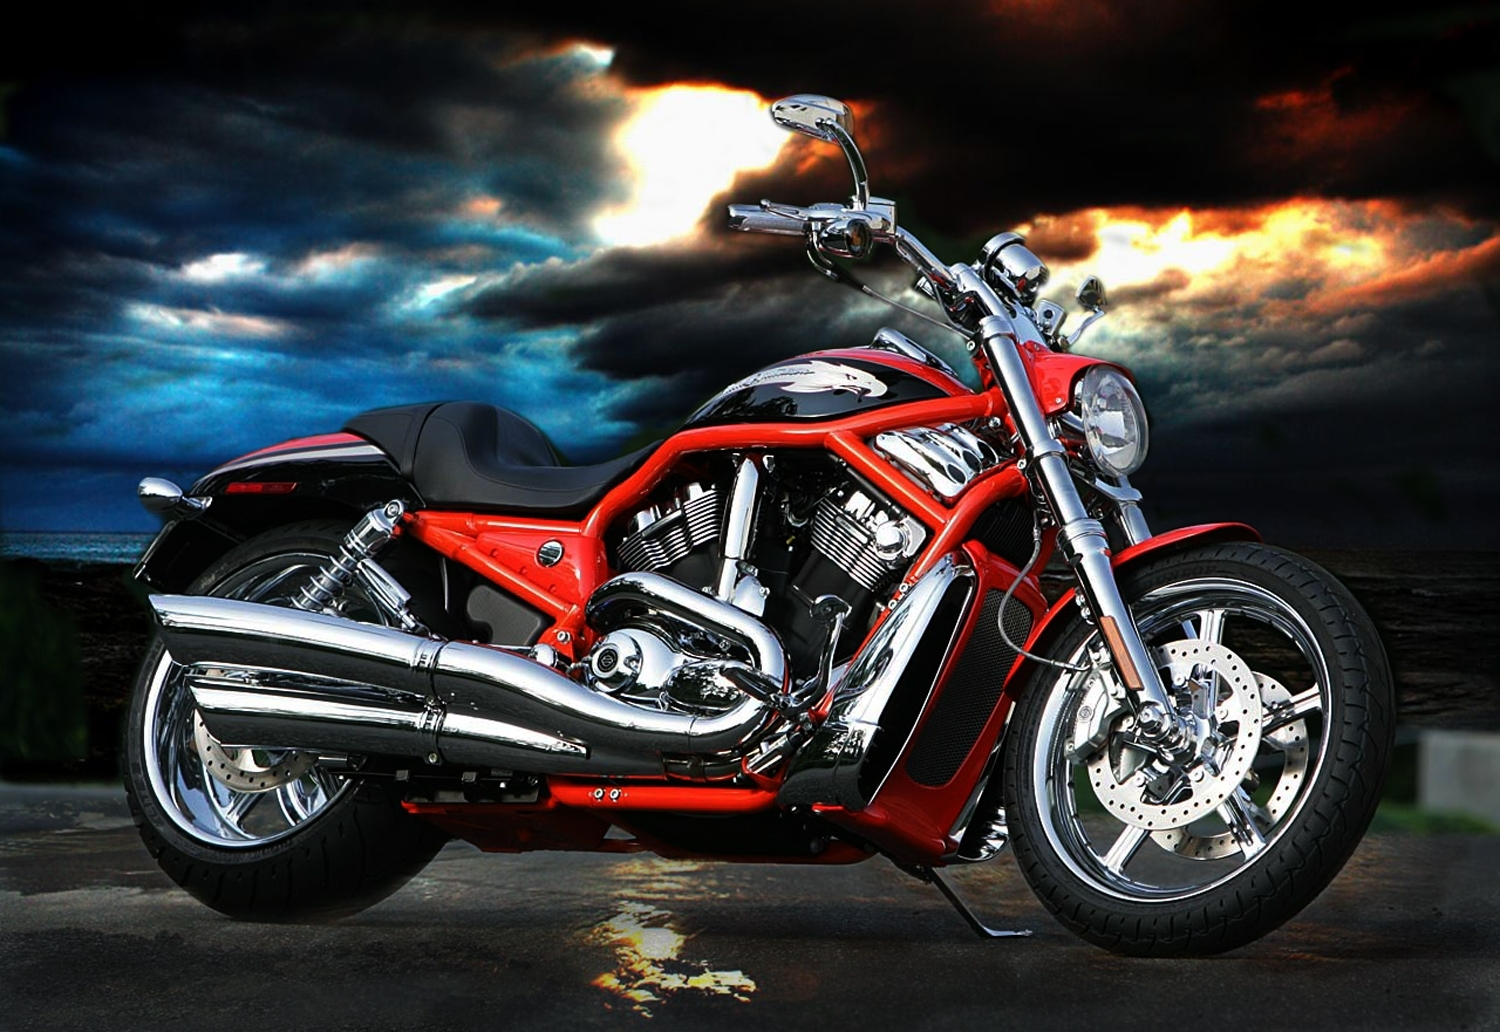 Harley-Davidson images Harley Davidson HD wallpaper and ...